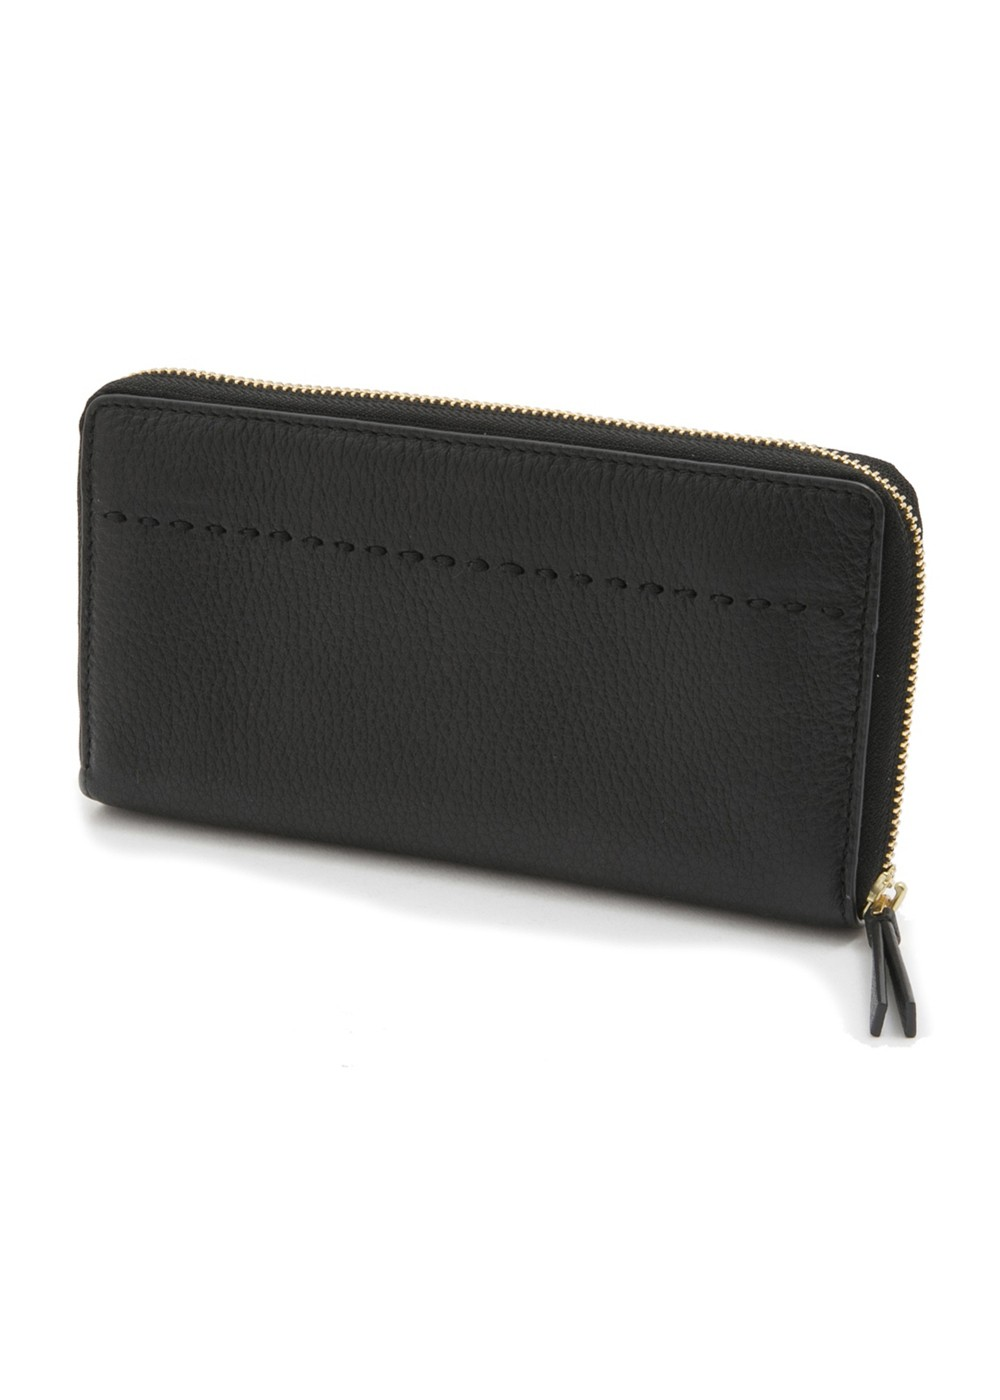 【最大47%OFF】McGRAW ZIP CONTINENTAL WALLET|BLACK|レディース財布|Tory Burch